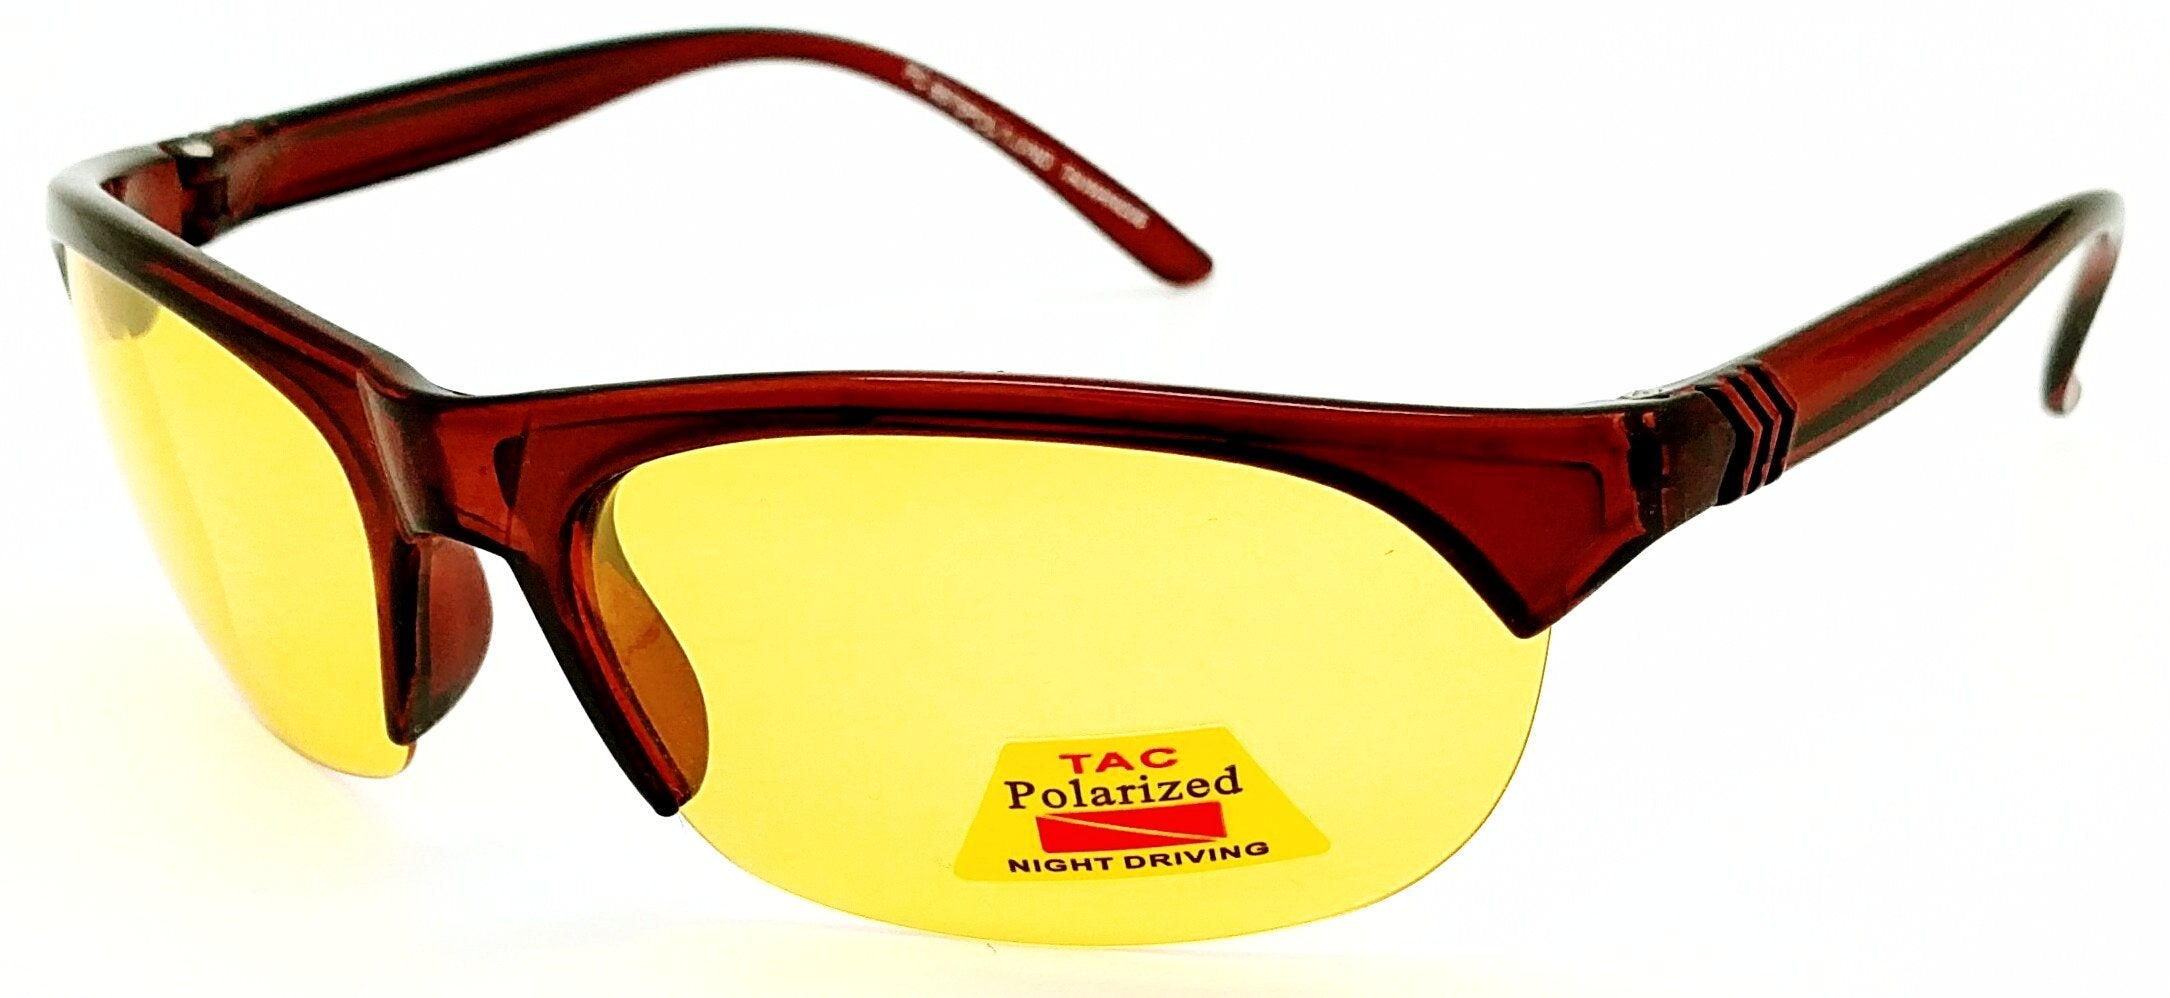 FOCUS ANTI-GLARE Night Driving Glasses Polarized Yellow Lens Reduces Glare Blade